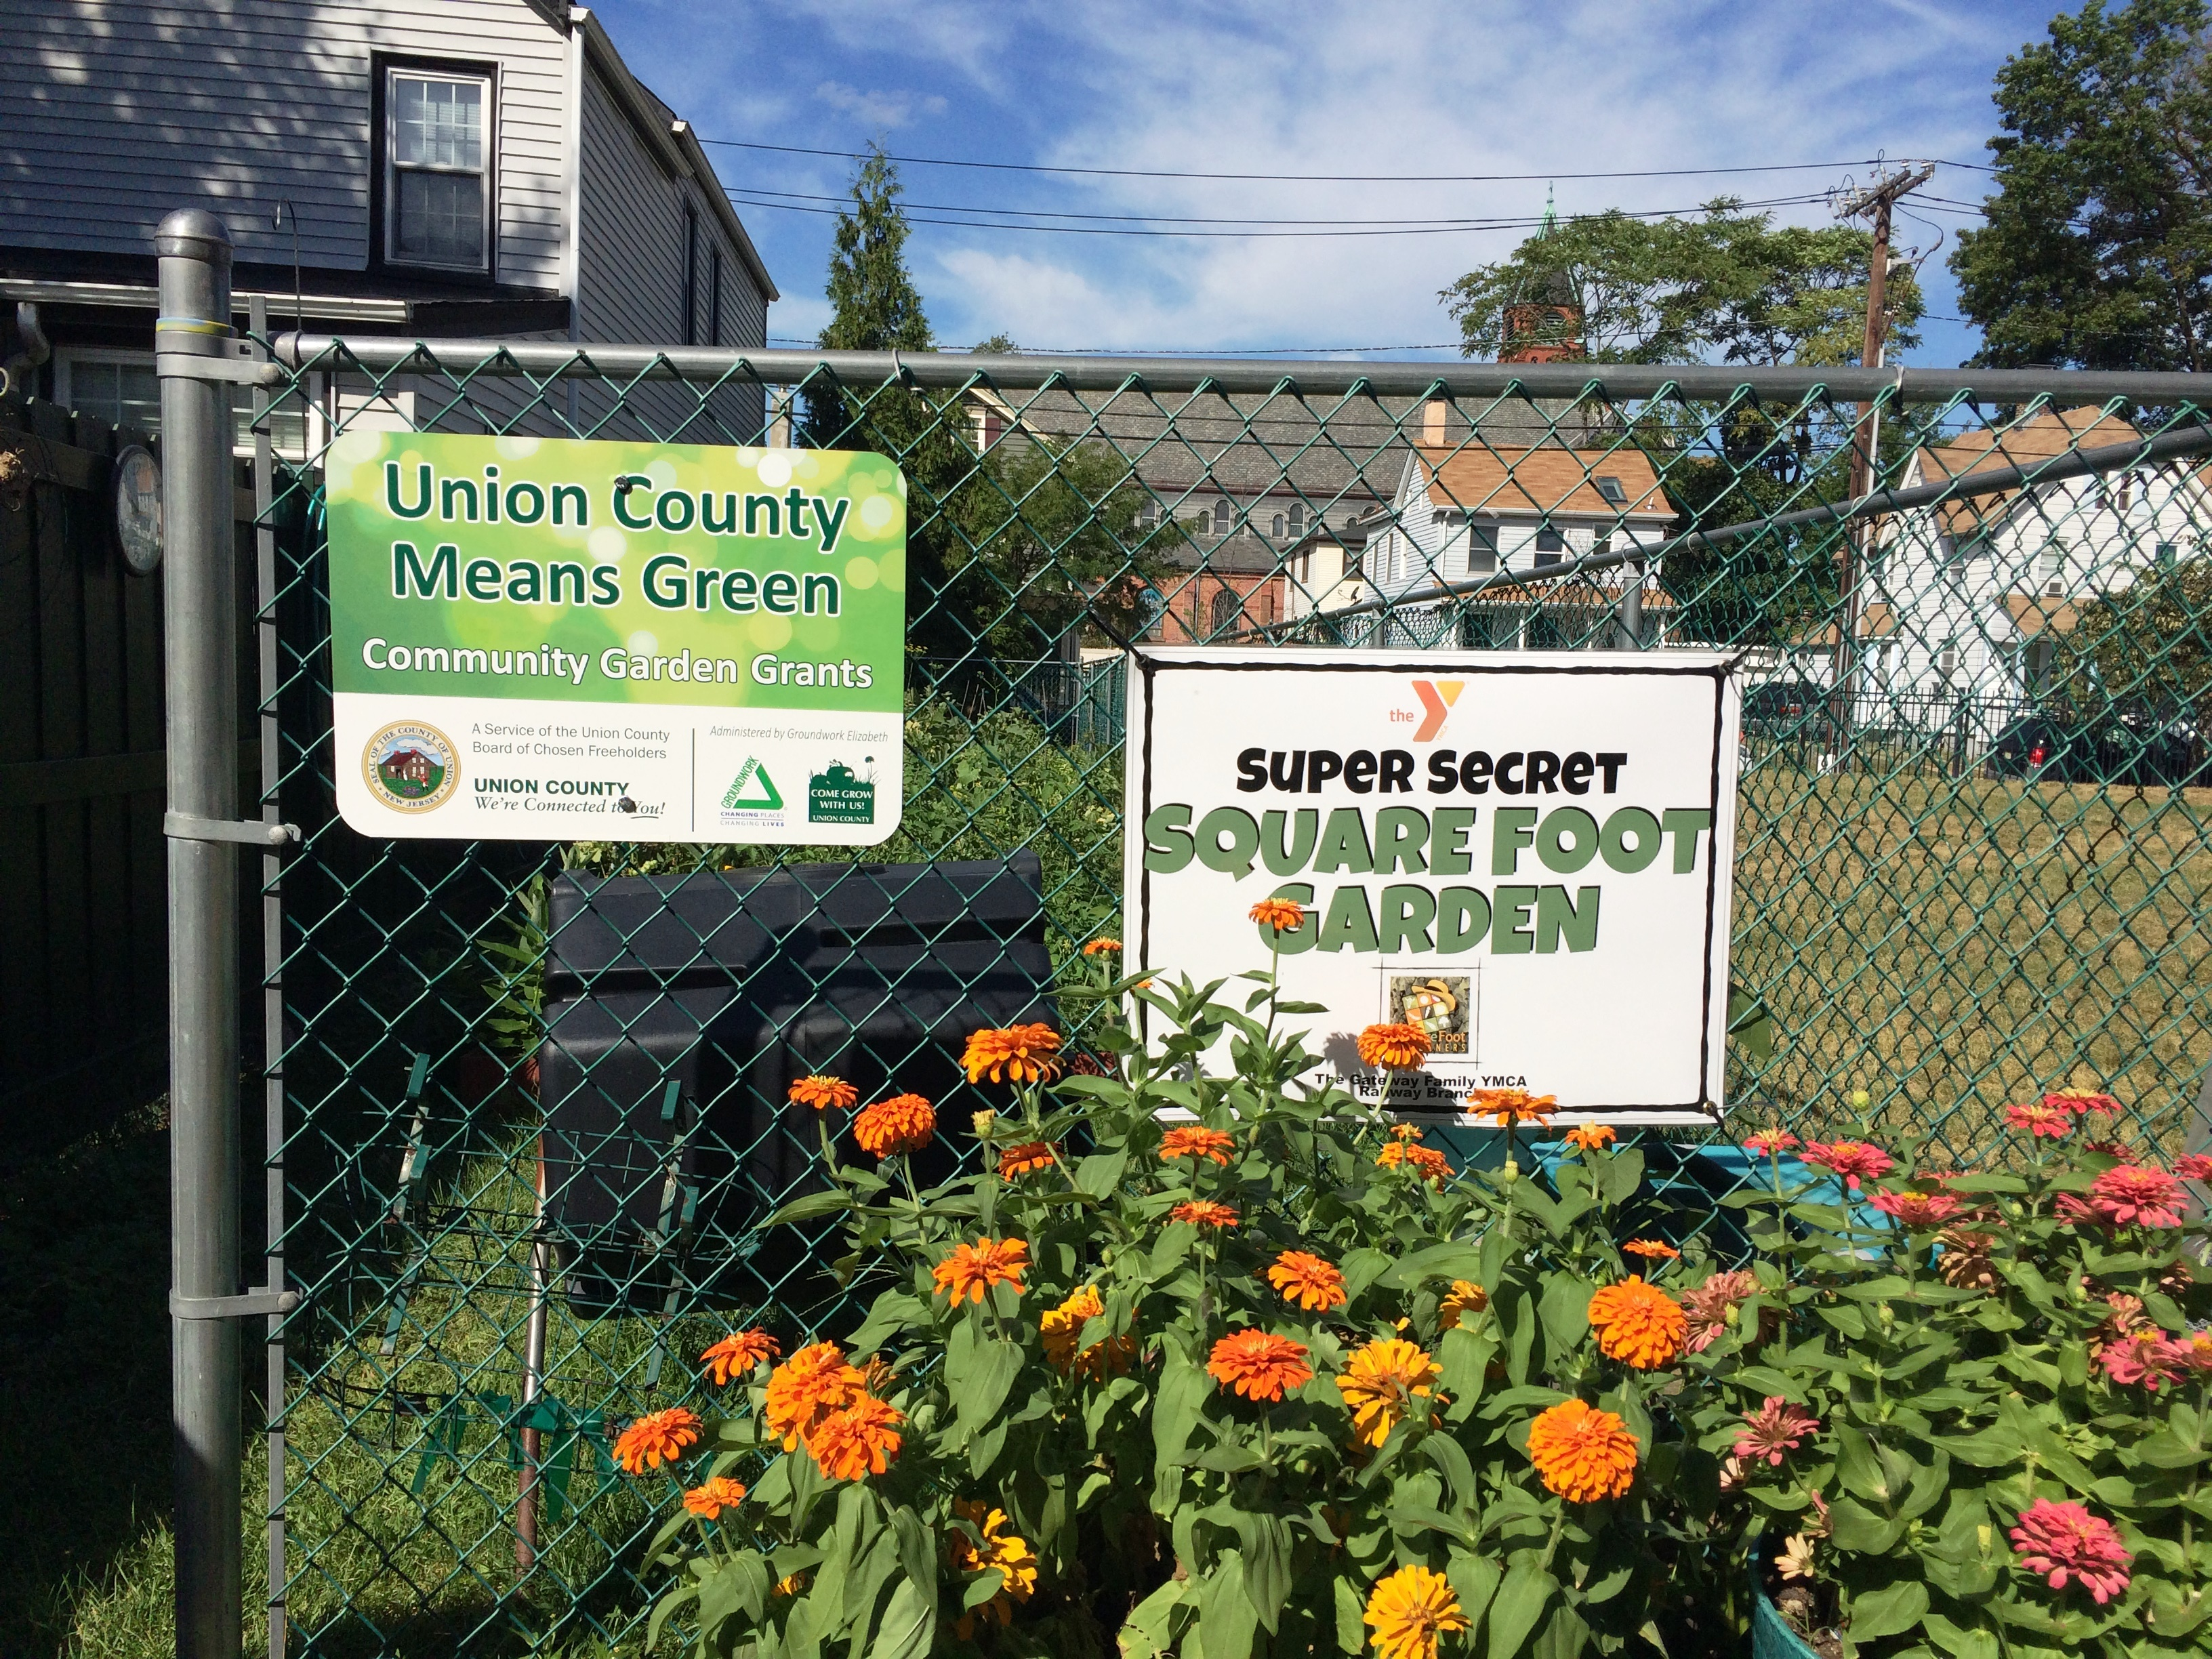 2016 Union County Means Green Community Garden Grant Awardees